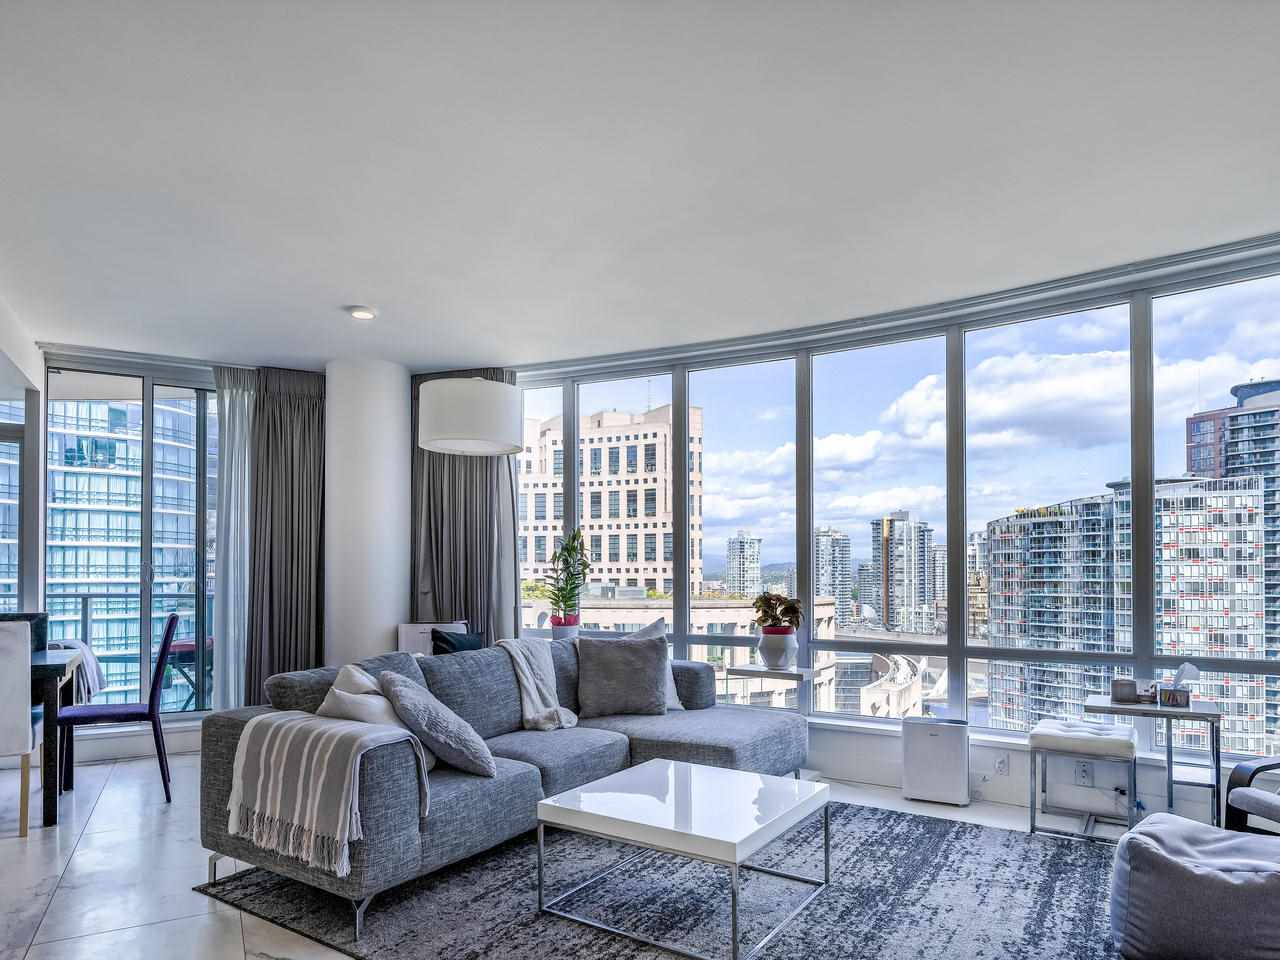 1703 833 HOMER STREET - Downtown VW Apartment/Condo for sale, 2 Bedrooms (R2493153) - #1